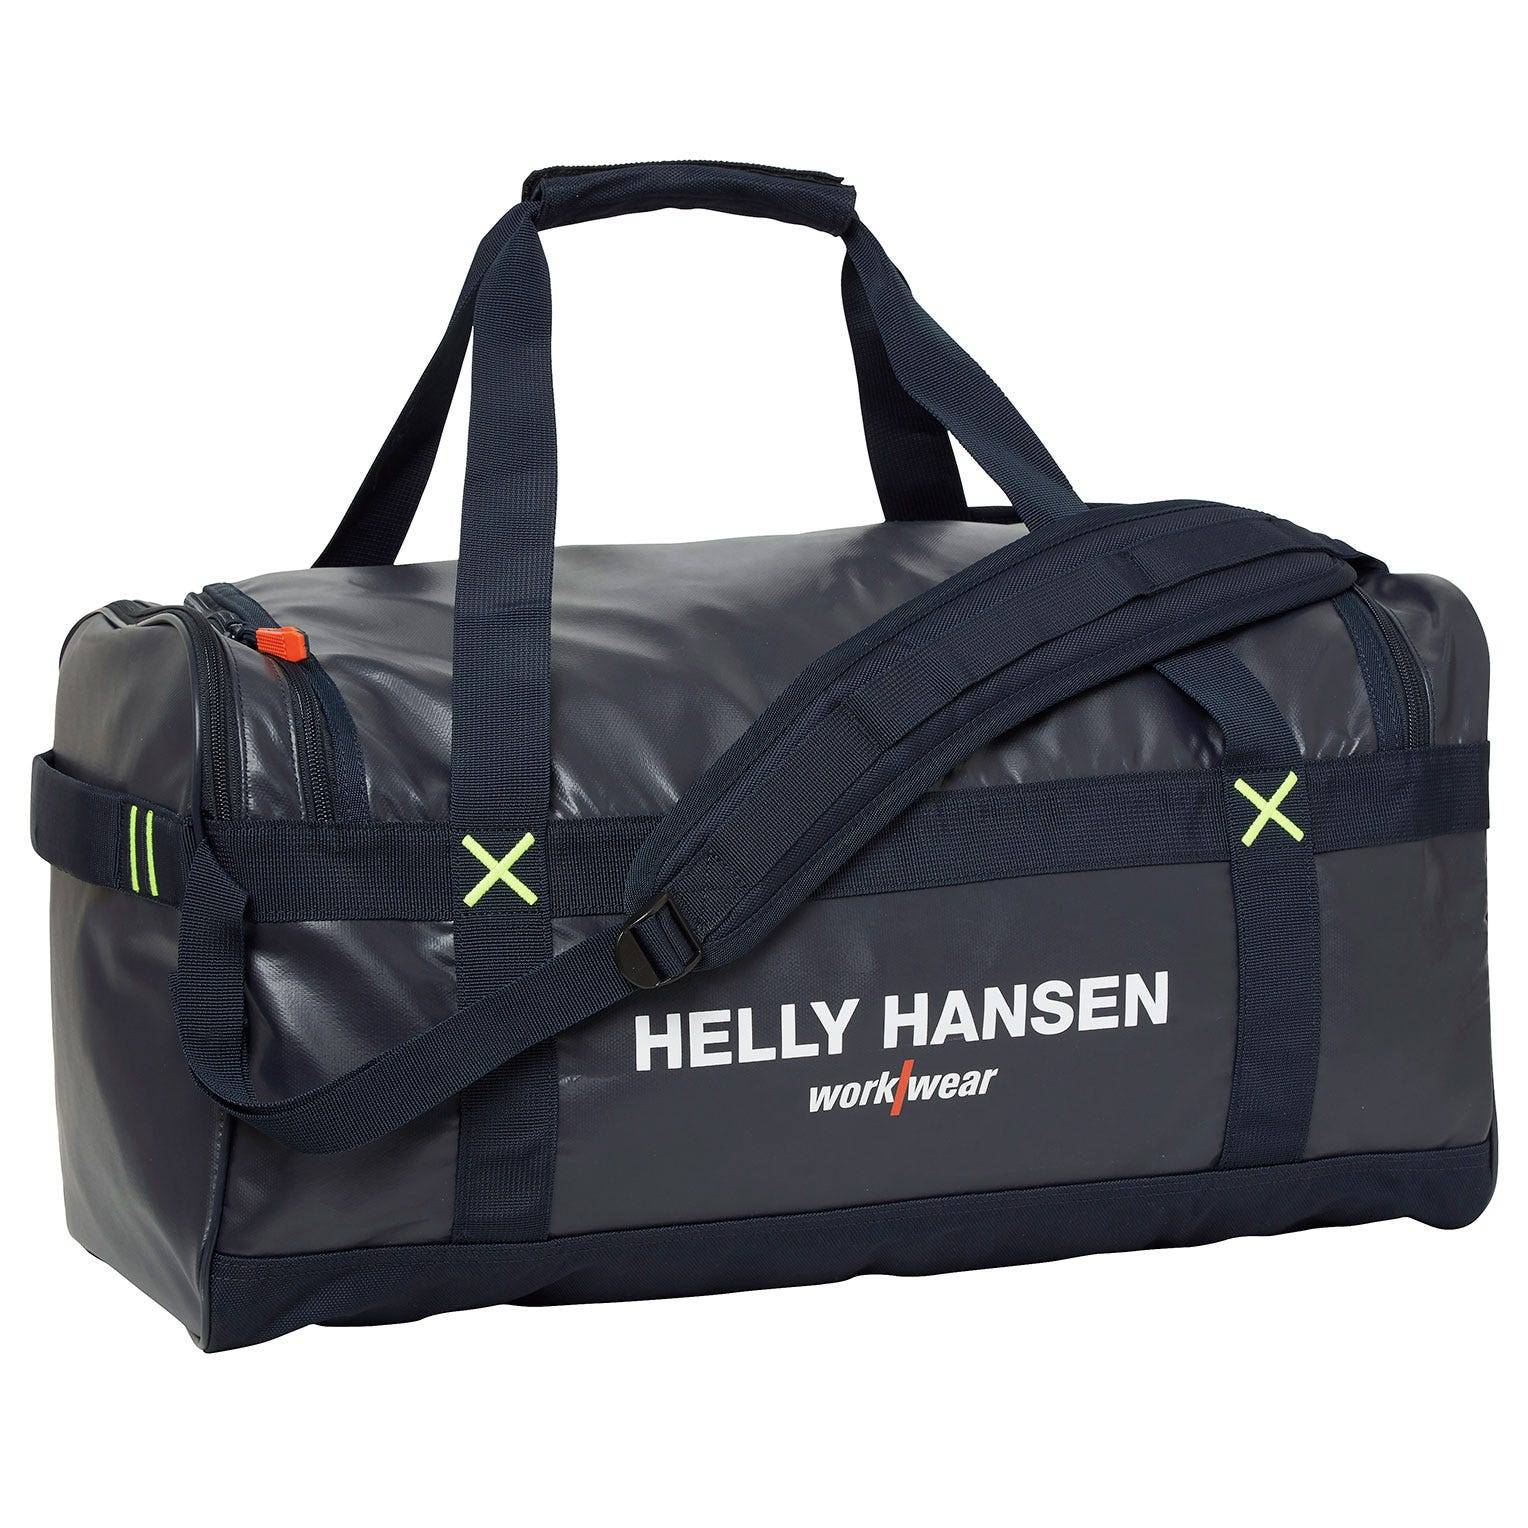 HH Workwear Helly Hansen WorkwearHH 50L Lightweight Duffel Bag Navy STD